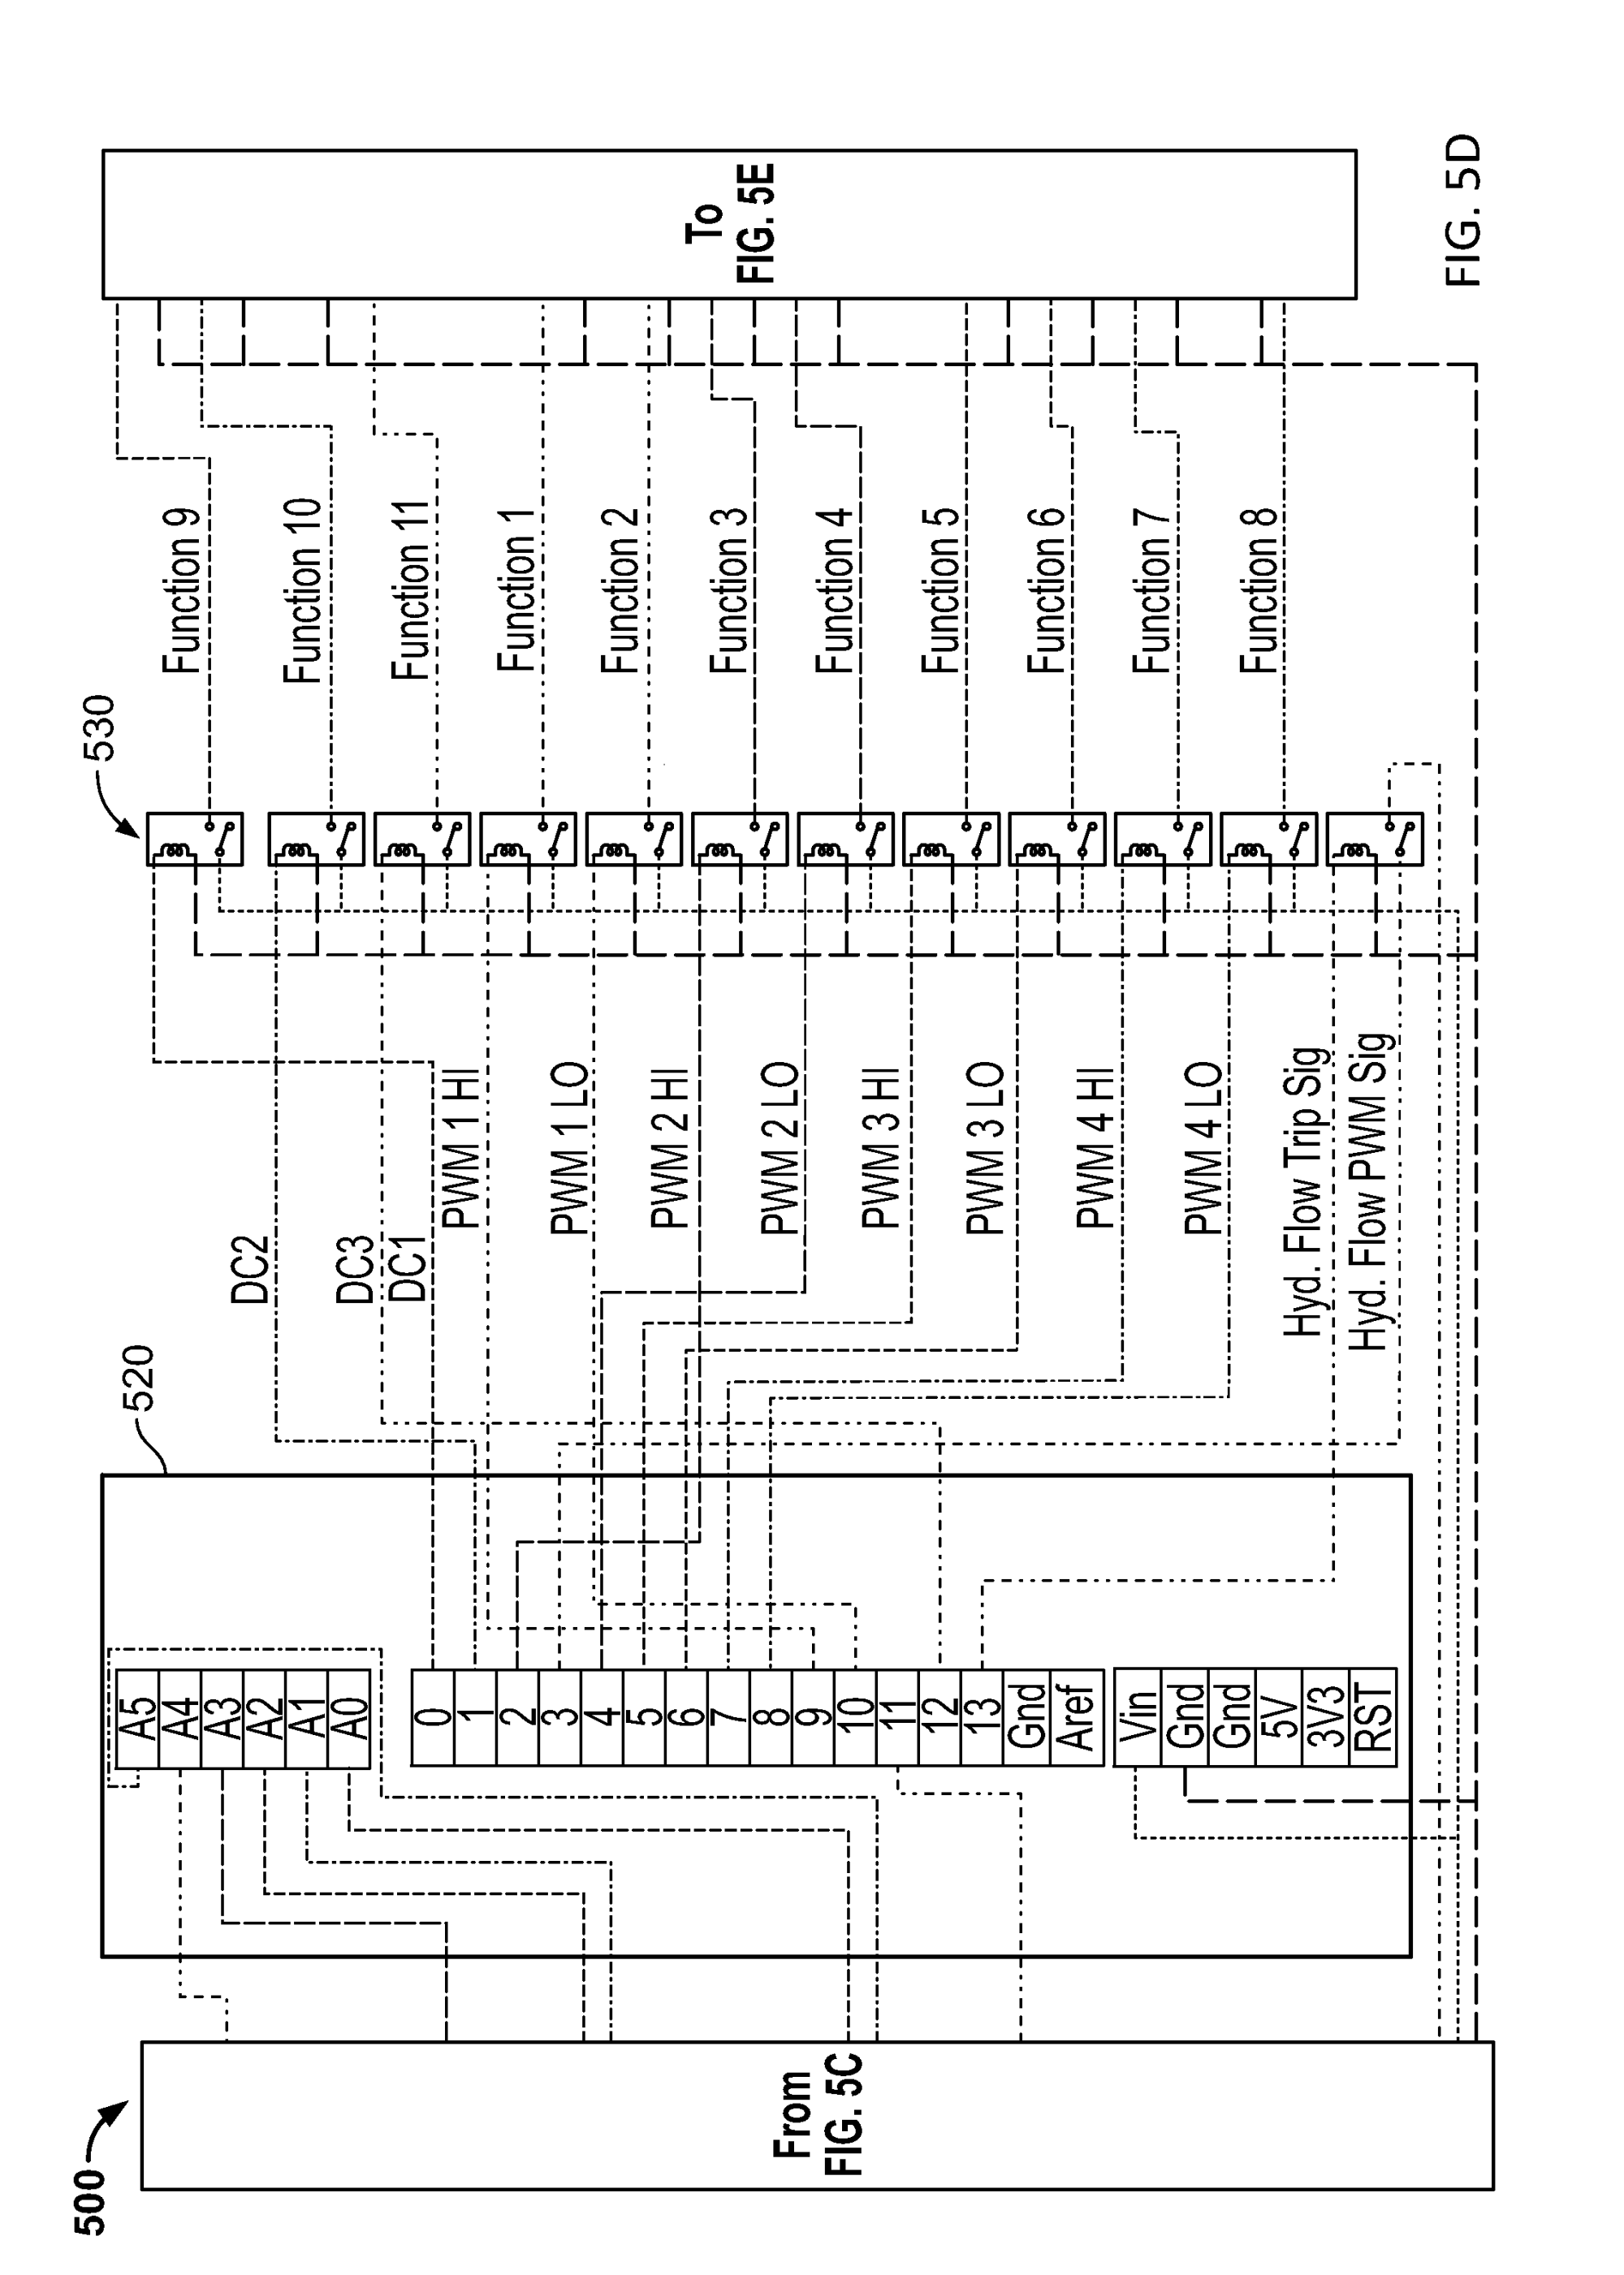 hight resolution of us20130274925a1 20131017 d00008 patent us20130274925 systems and methods for attachment control bobcat 14 pin connector wiring